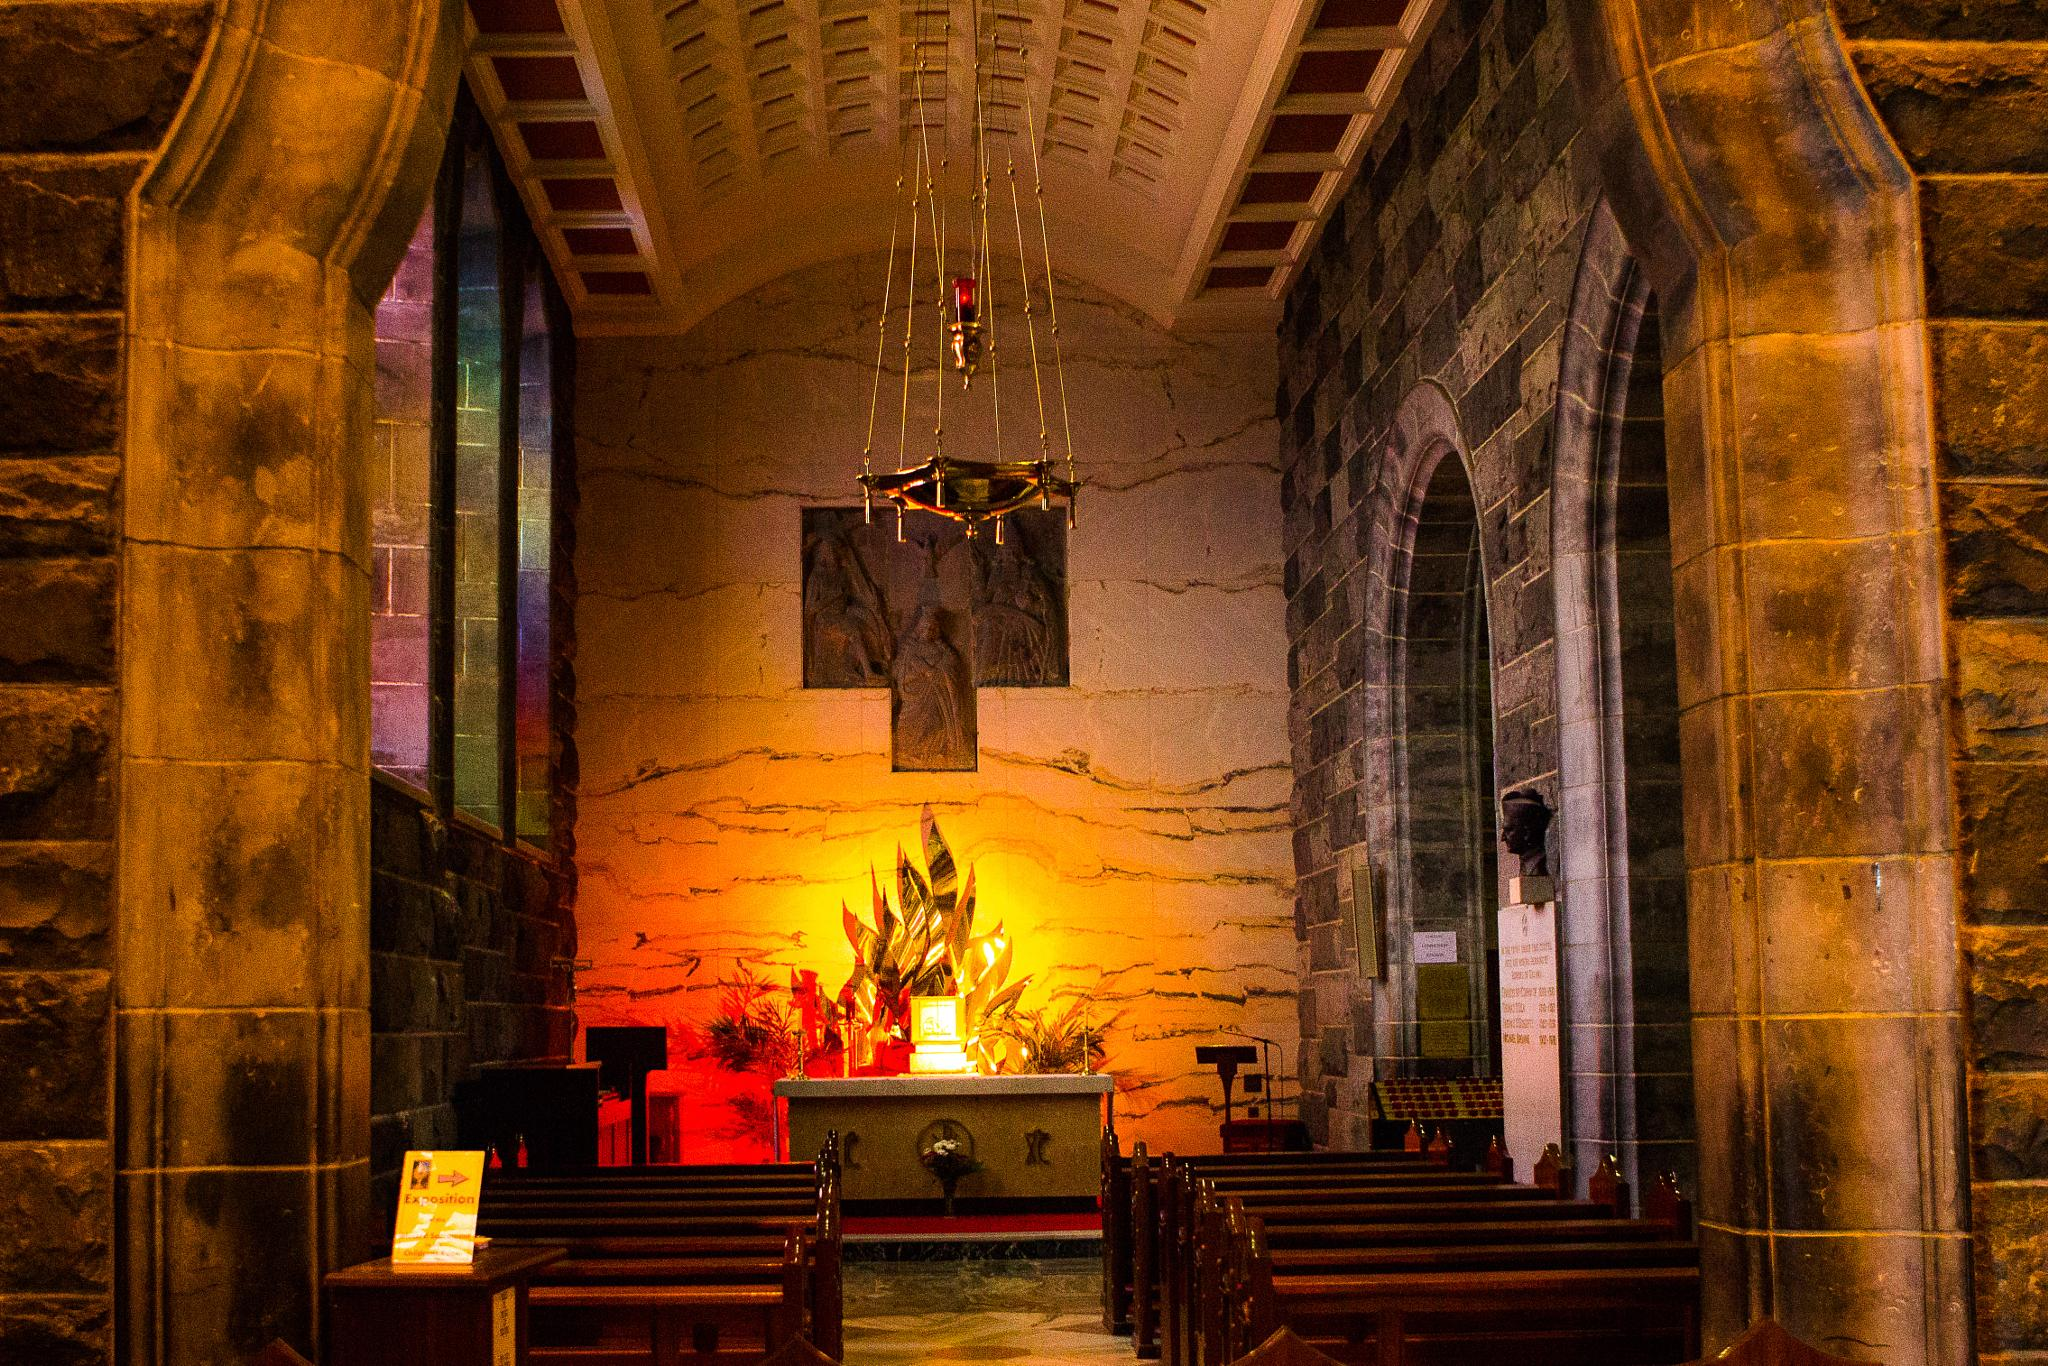 Chapel at Galway Cathedral by Don F